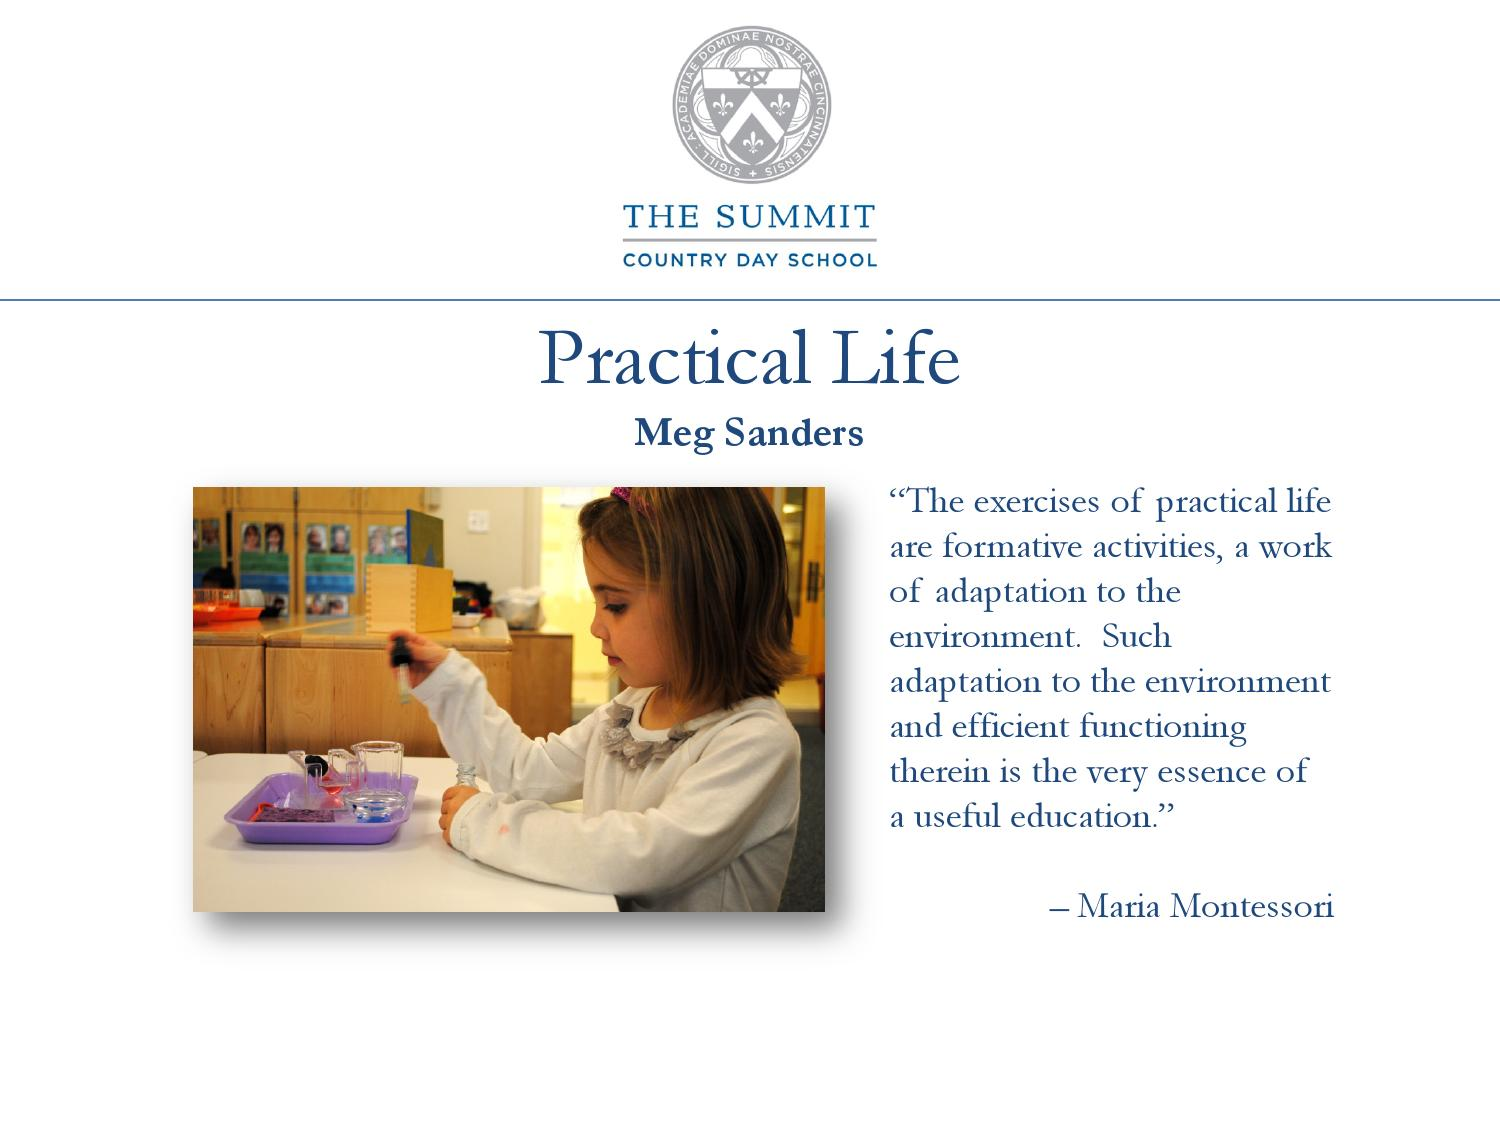 montessori philosophy A brief synopsis of the montessori method the montessori method is an educational method for children, based on theories of child development originated by italian educator maria montessori in the early 20th century.